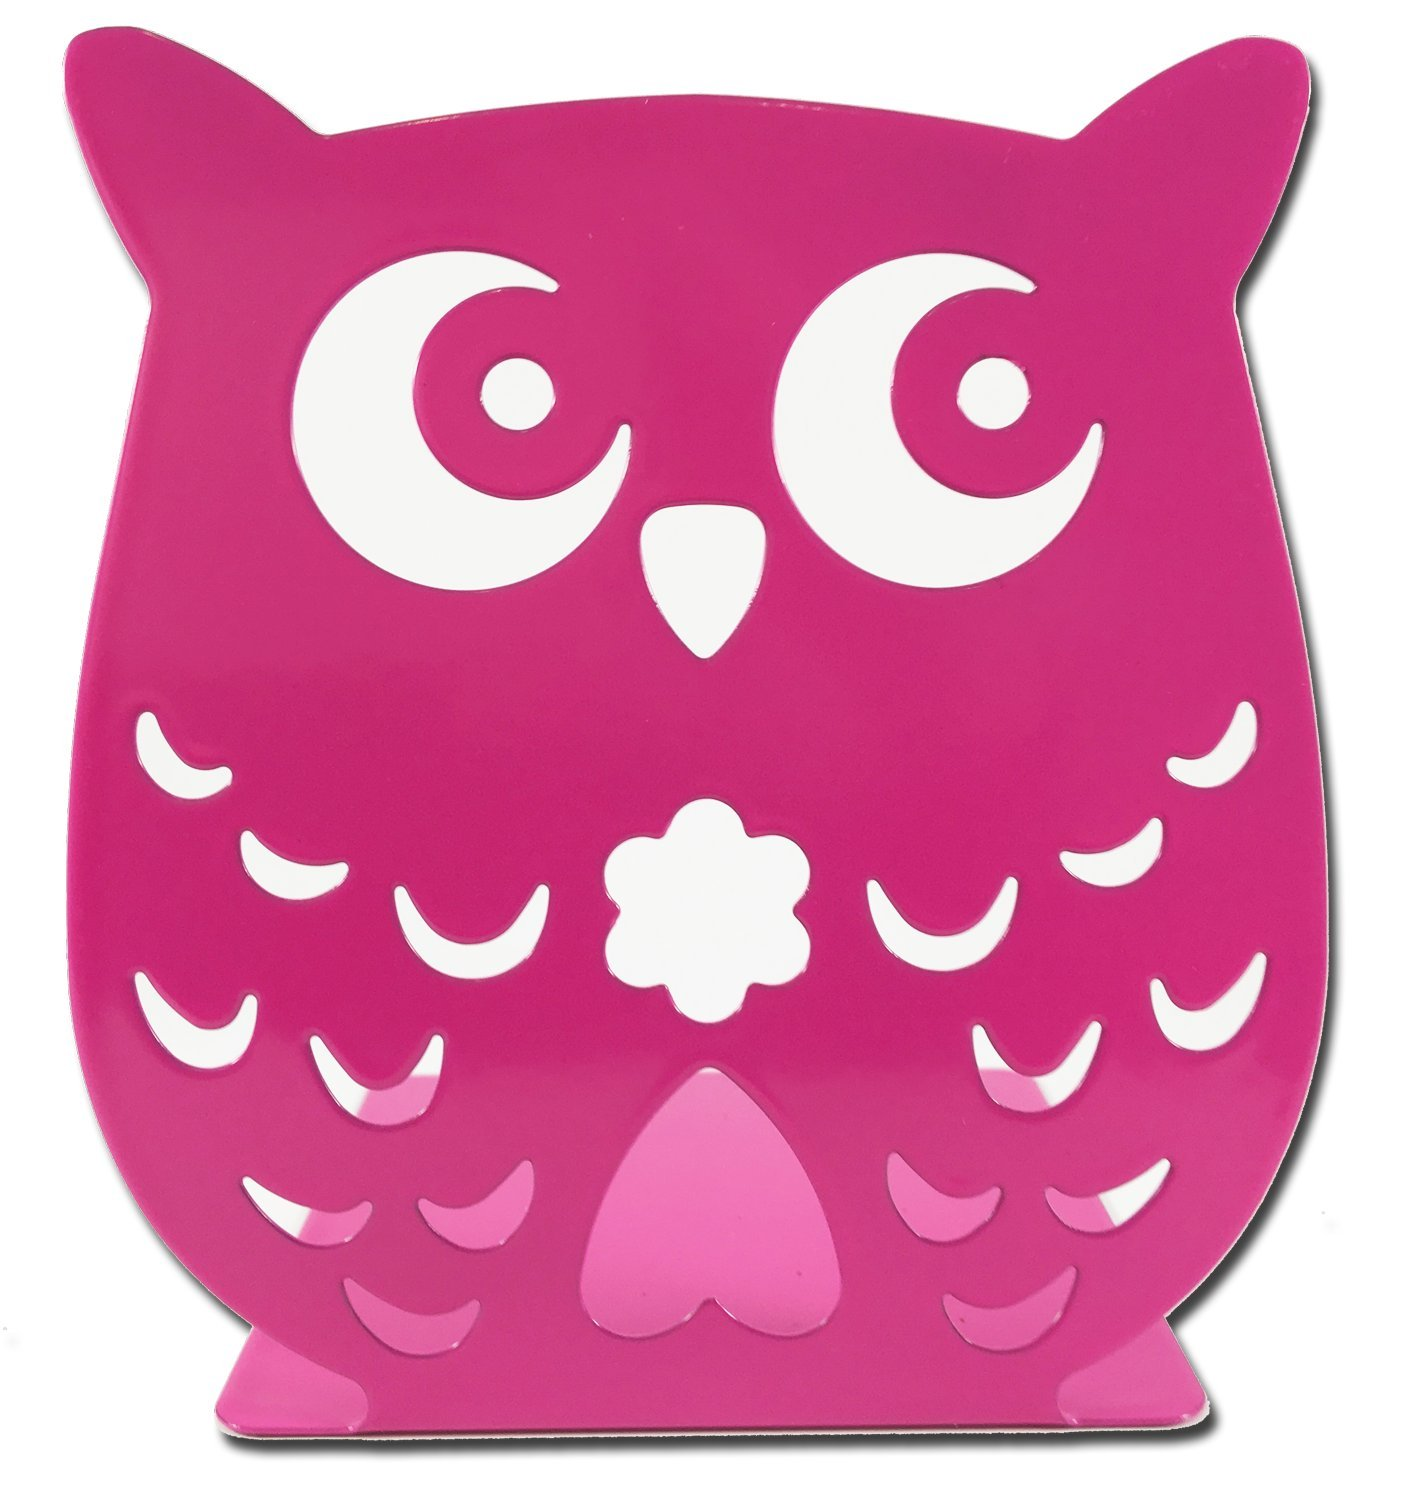 Owl Wonderland Bookends - Cute Lightweight Baby Owls - Great Decor for Little Ones Nursery, Childrens Bedroom, Kids Playroom or Fun Owllover Gift for Office (Pink)